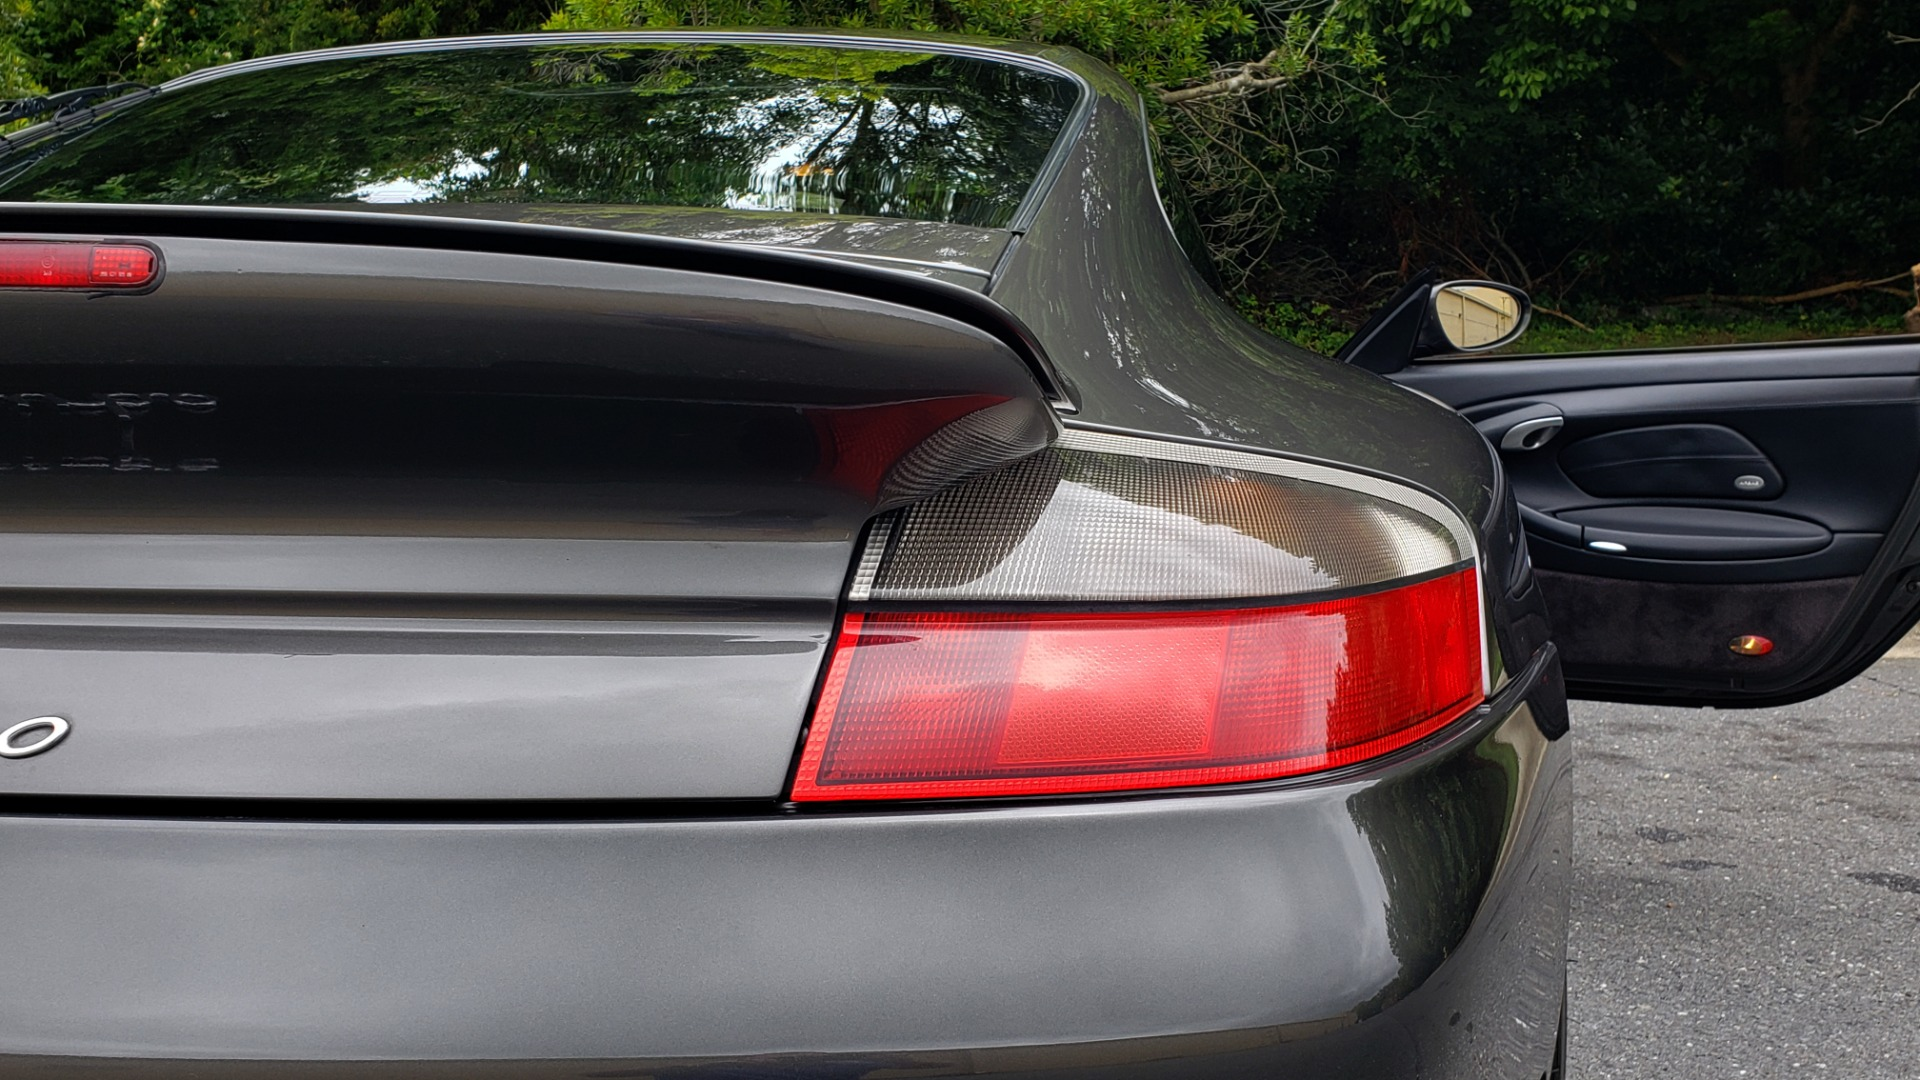 Used 2002 Porsche 911 CARRERA TURBO / 6-SPD MAN / ALPINE / BOSE / PERF UPGRADES for sale $53,995 at Formula Imports in Charlotte NC 28227 48